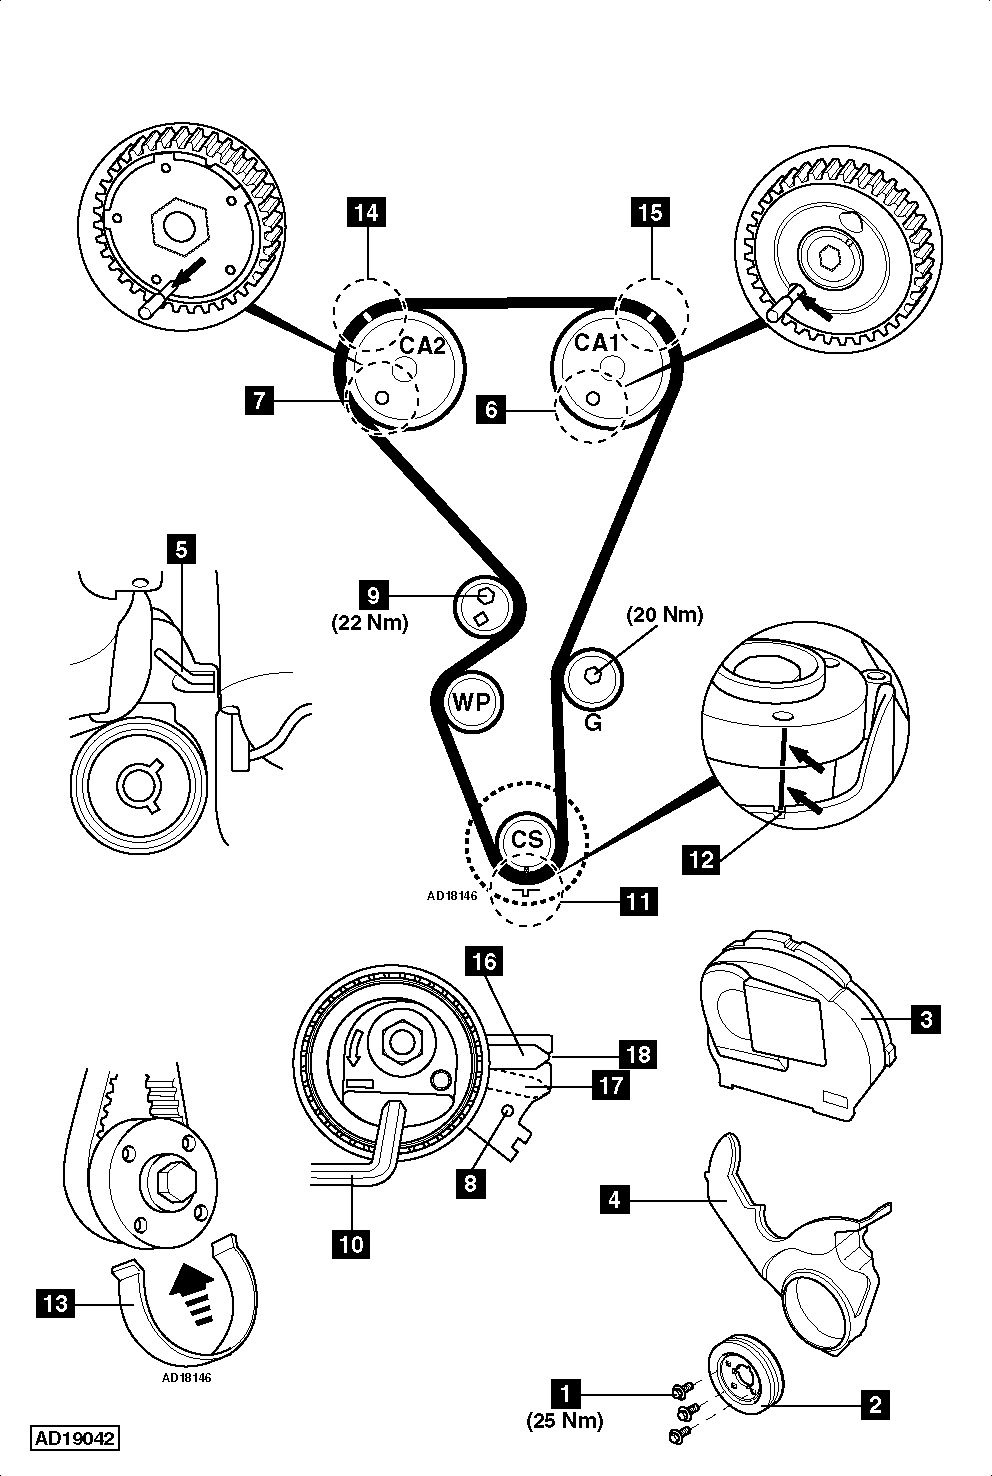 Diagrama De Tiepo Para Mazda Mpv 30 2003 further How To Replace Timing Belt On Peugeot 307 1 4i 2005 2007 also How To Replace Timing Chain On Vauxhallopel Insignia 2 0 Turbo 4x4 also Showthread moreover Diagrama De Sincronizacion De Cadena De Tiempo. on ford 2 3 timing marks diagram